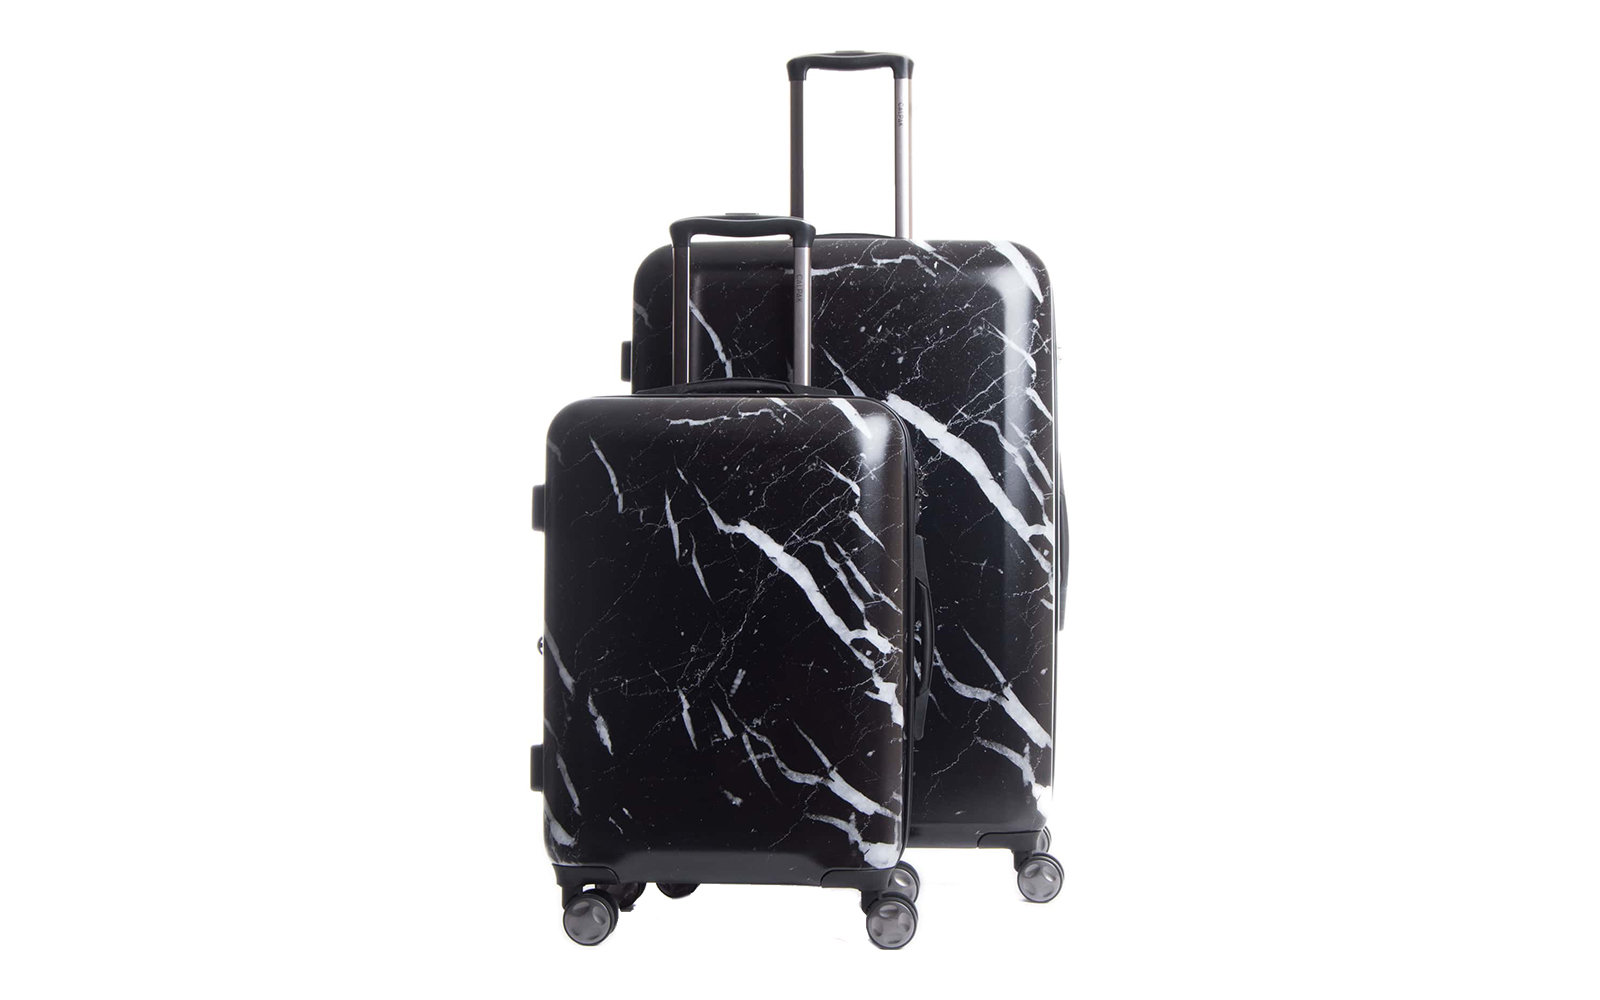 Calpak Astyll Spinner Luggage Two-Piece